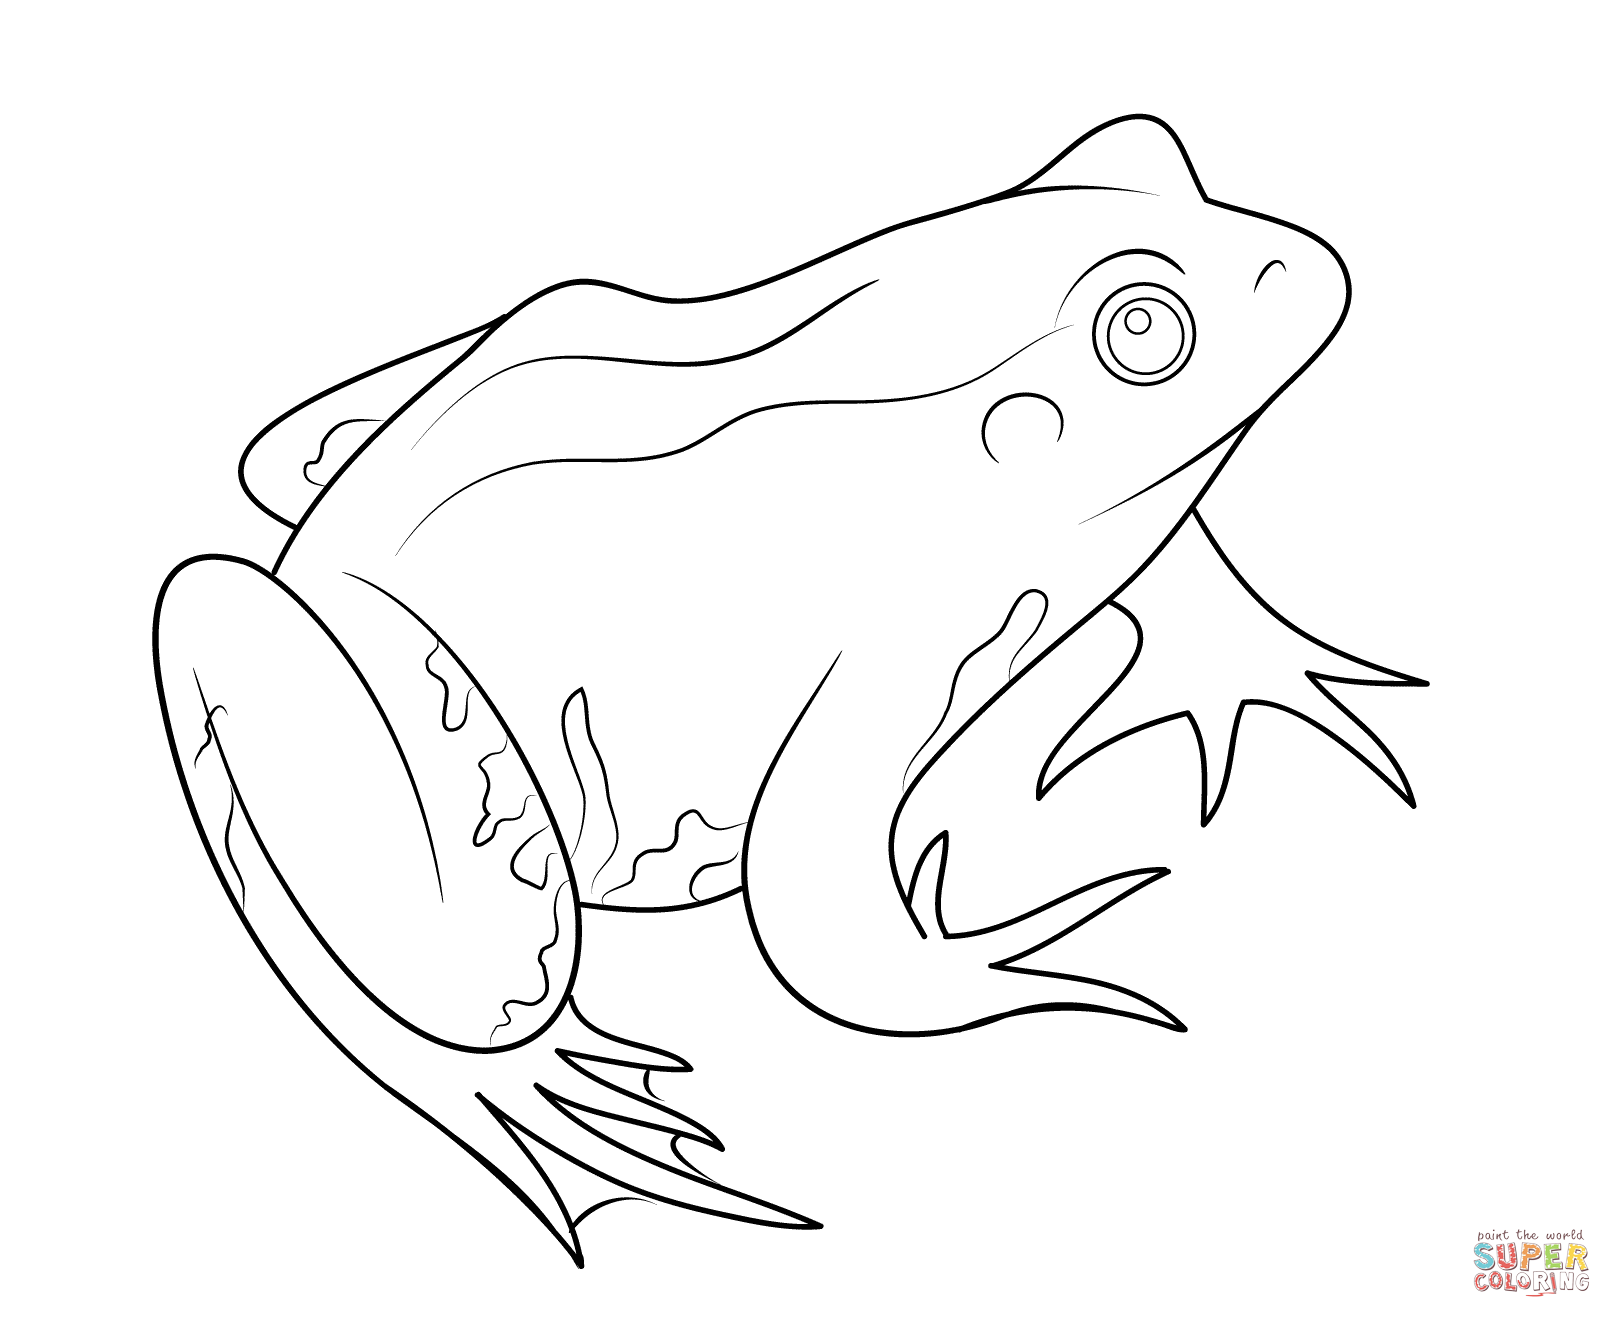 Frog coloring page.